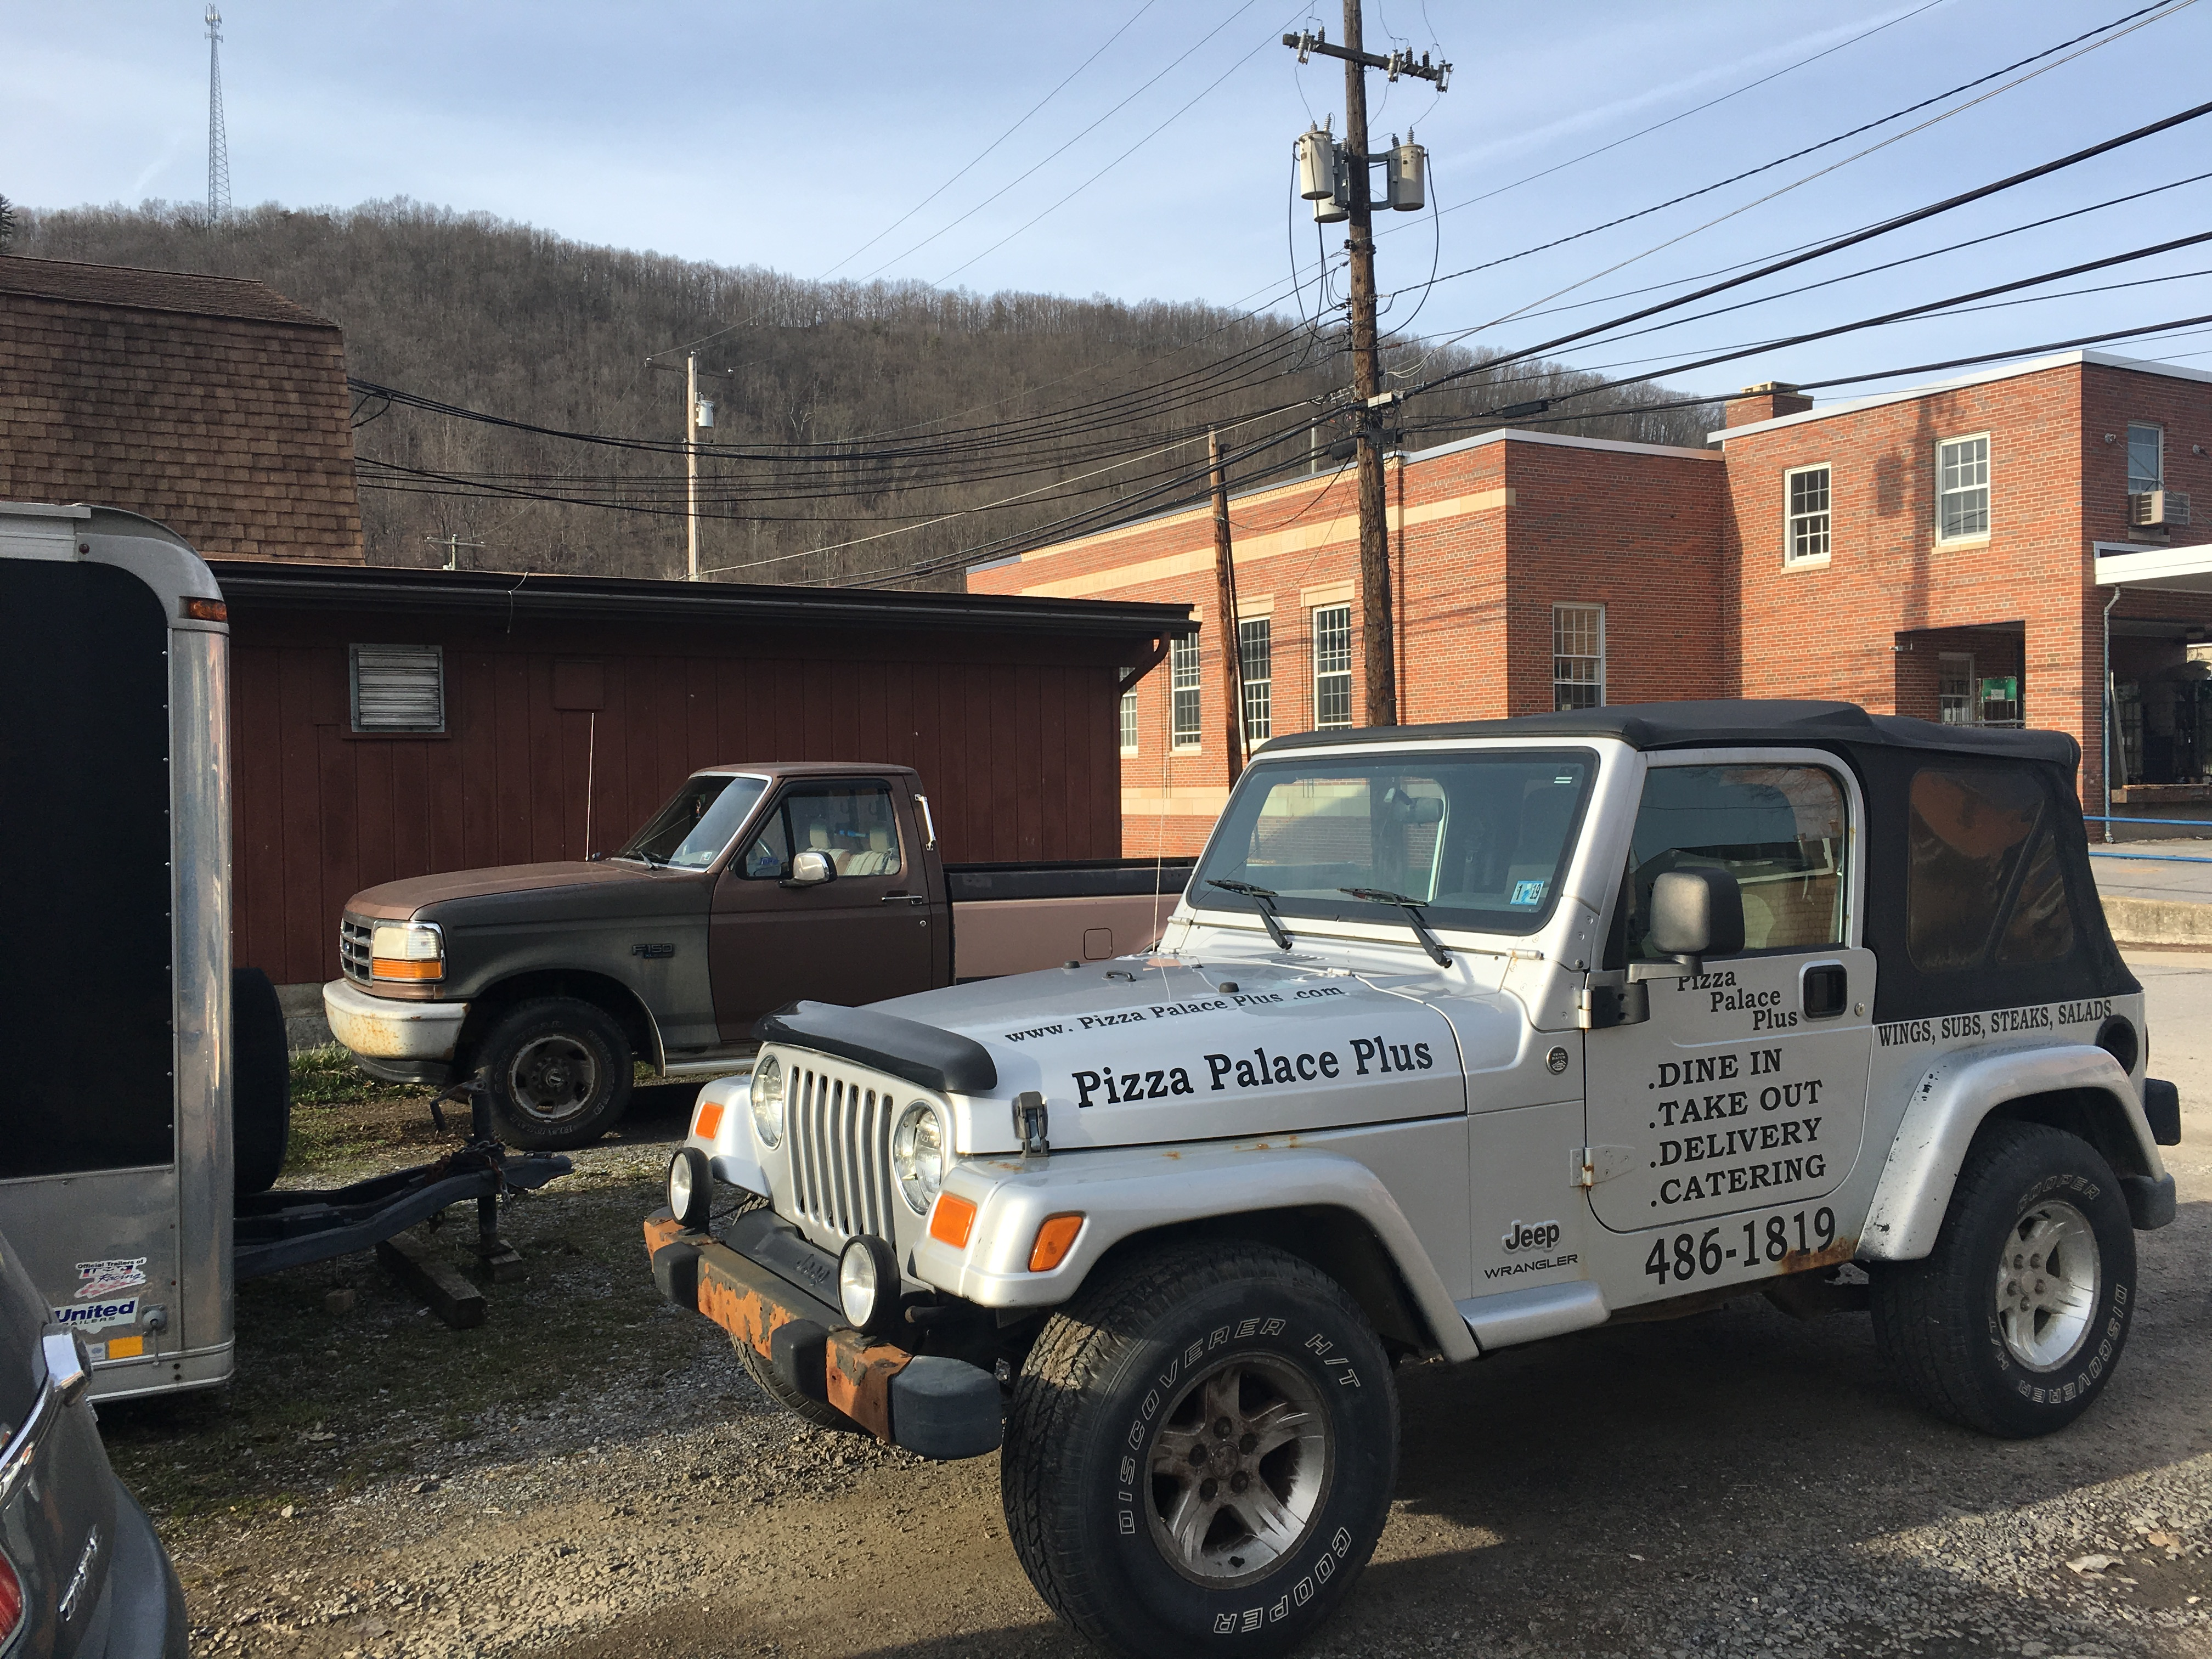 Pizza Palace Plus has a Jeep to deliver pies to hard-to-reach destinations.